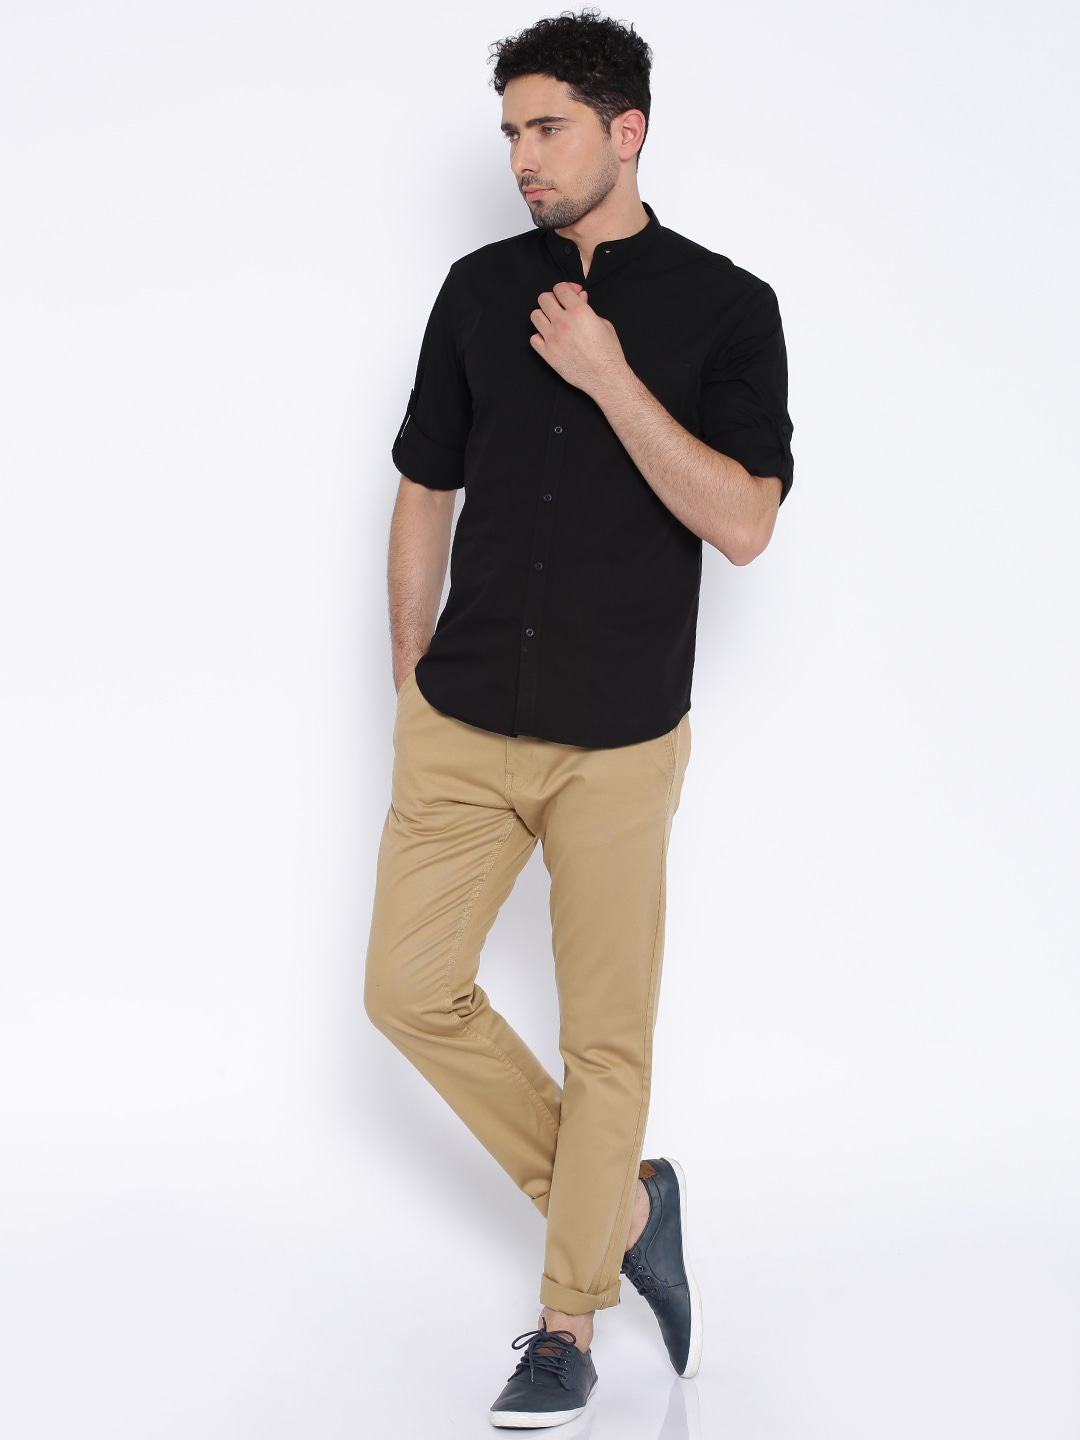 Khakis Black Shirt Custom Shirt